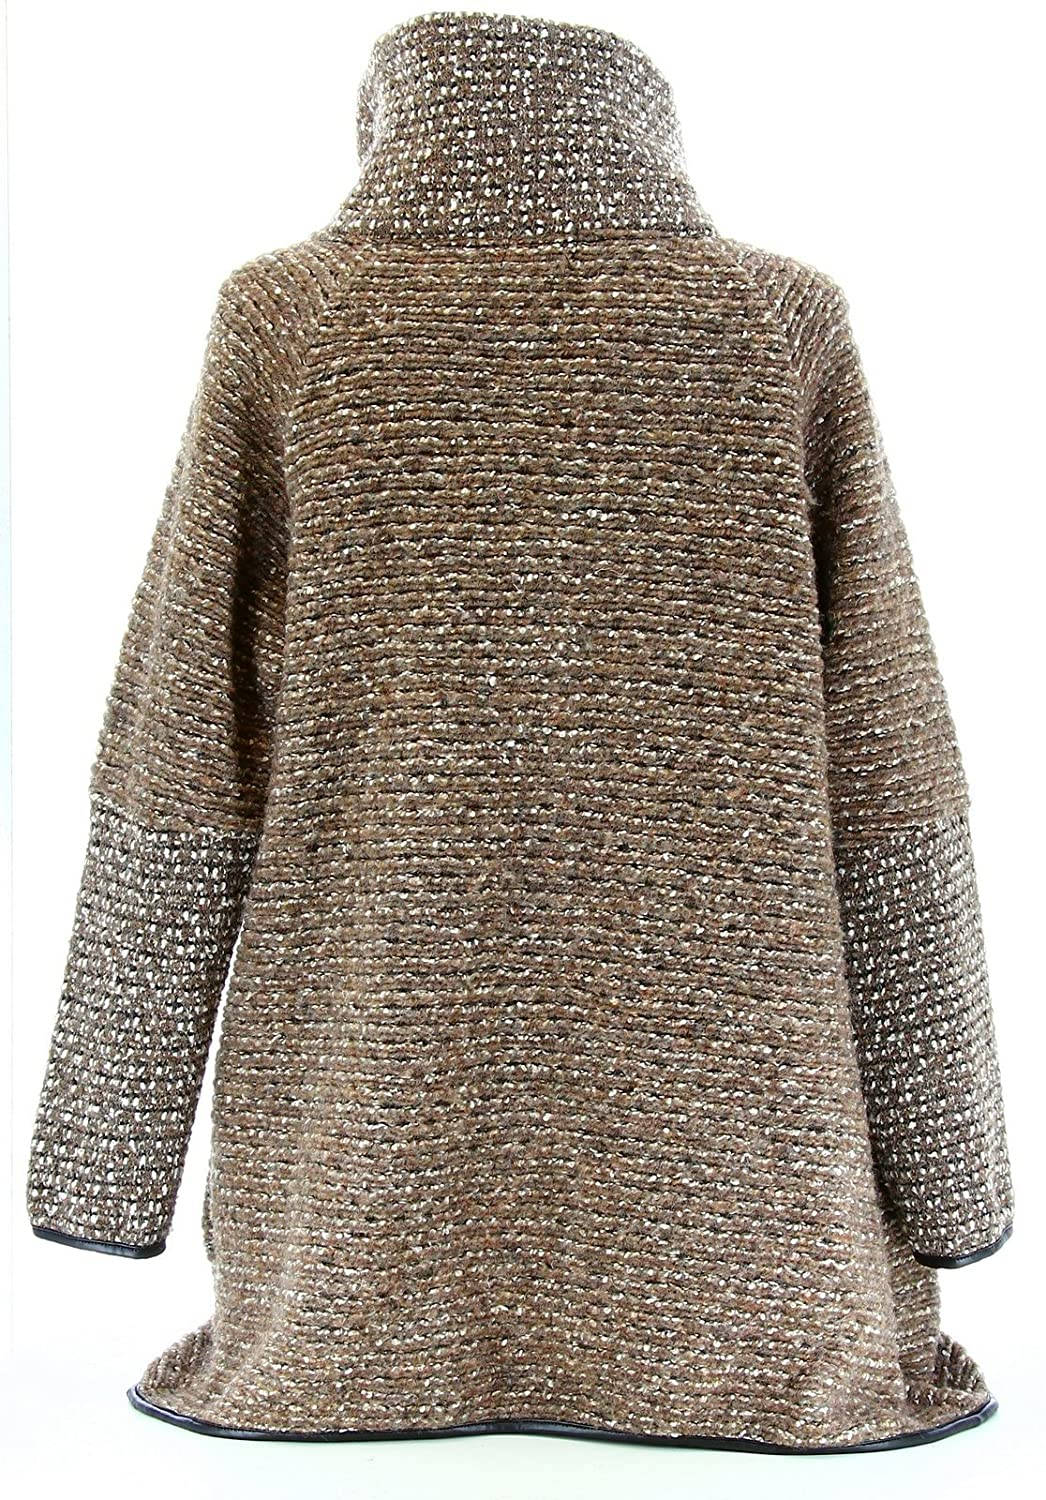 33a5a2d4d03a Charleselie94® - Manteau Cape Laine Bouillie Hiver Grande Taille Taupe  Violetta Taupe